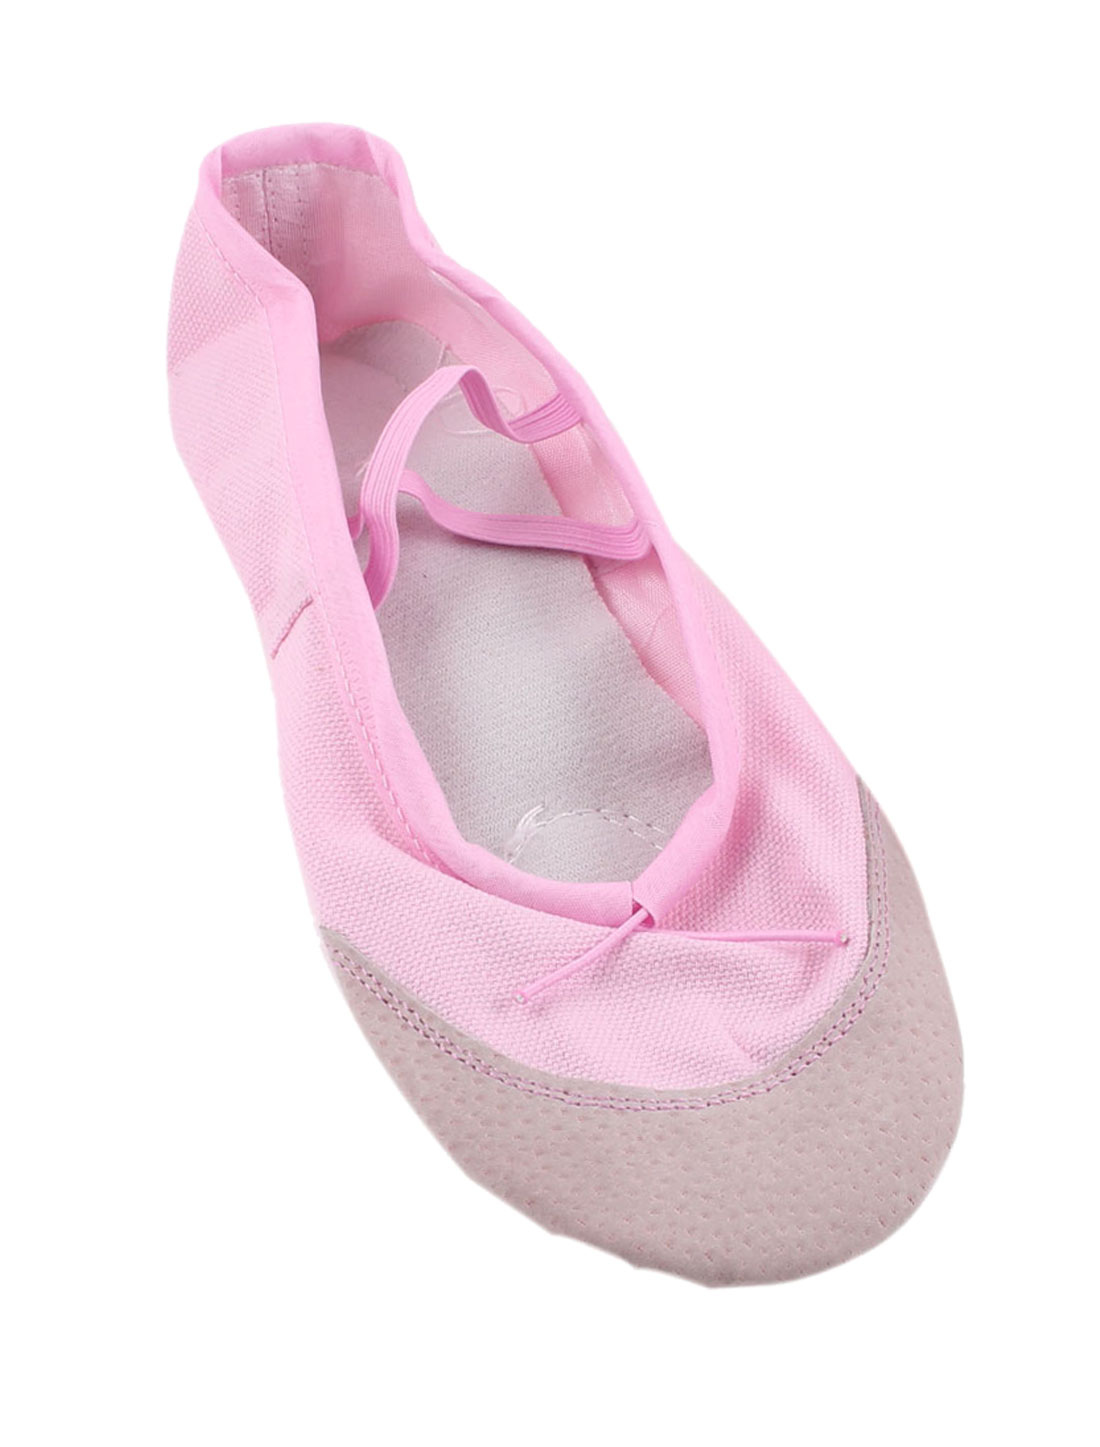 Pink Faux Leather Split Sole Canvas Ballet Flats Shoes UK Size 5 for Ladies